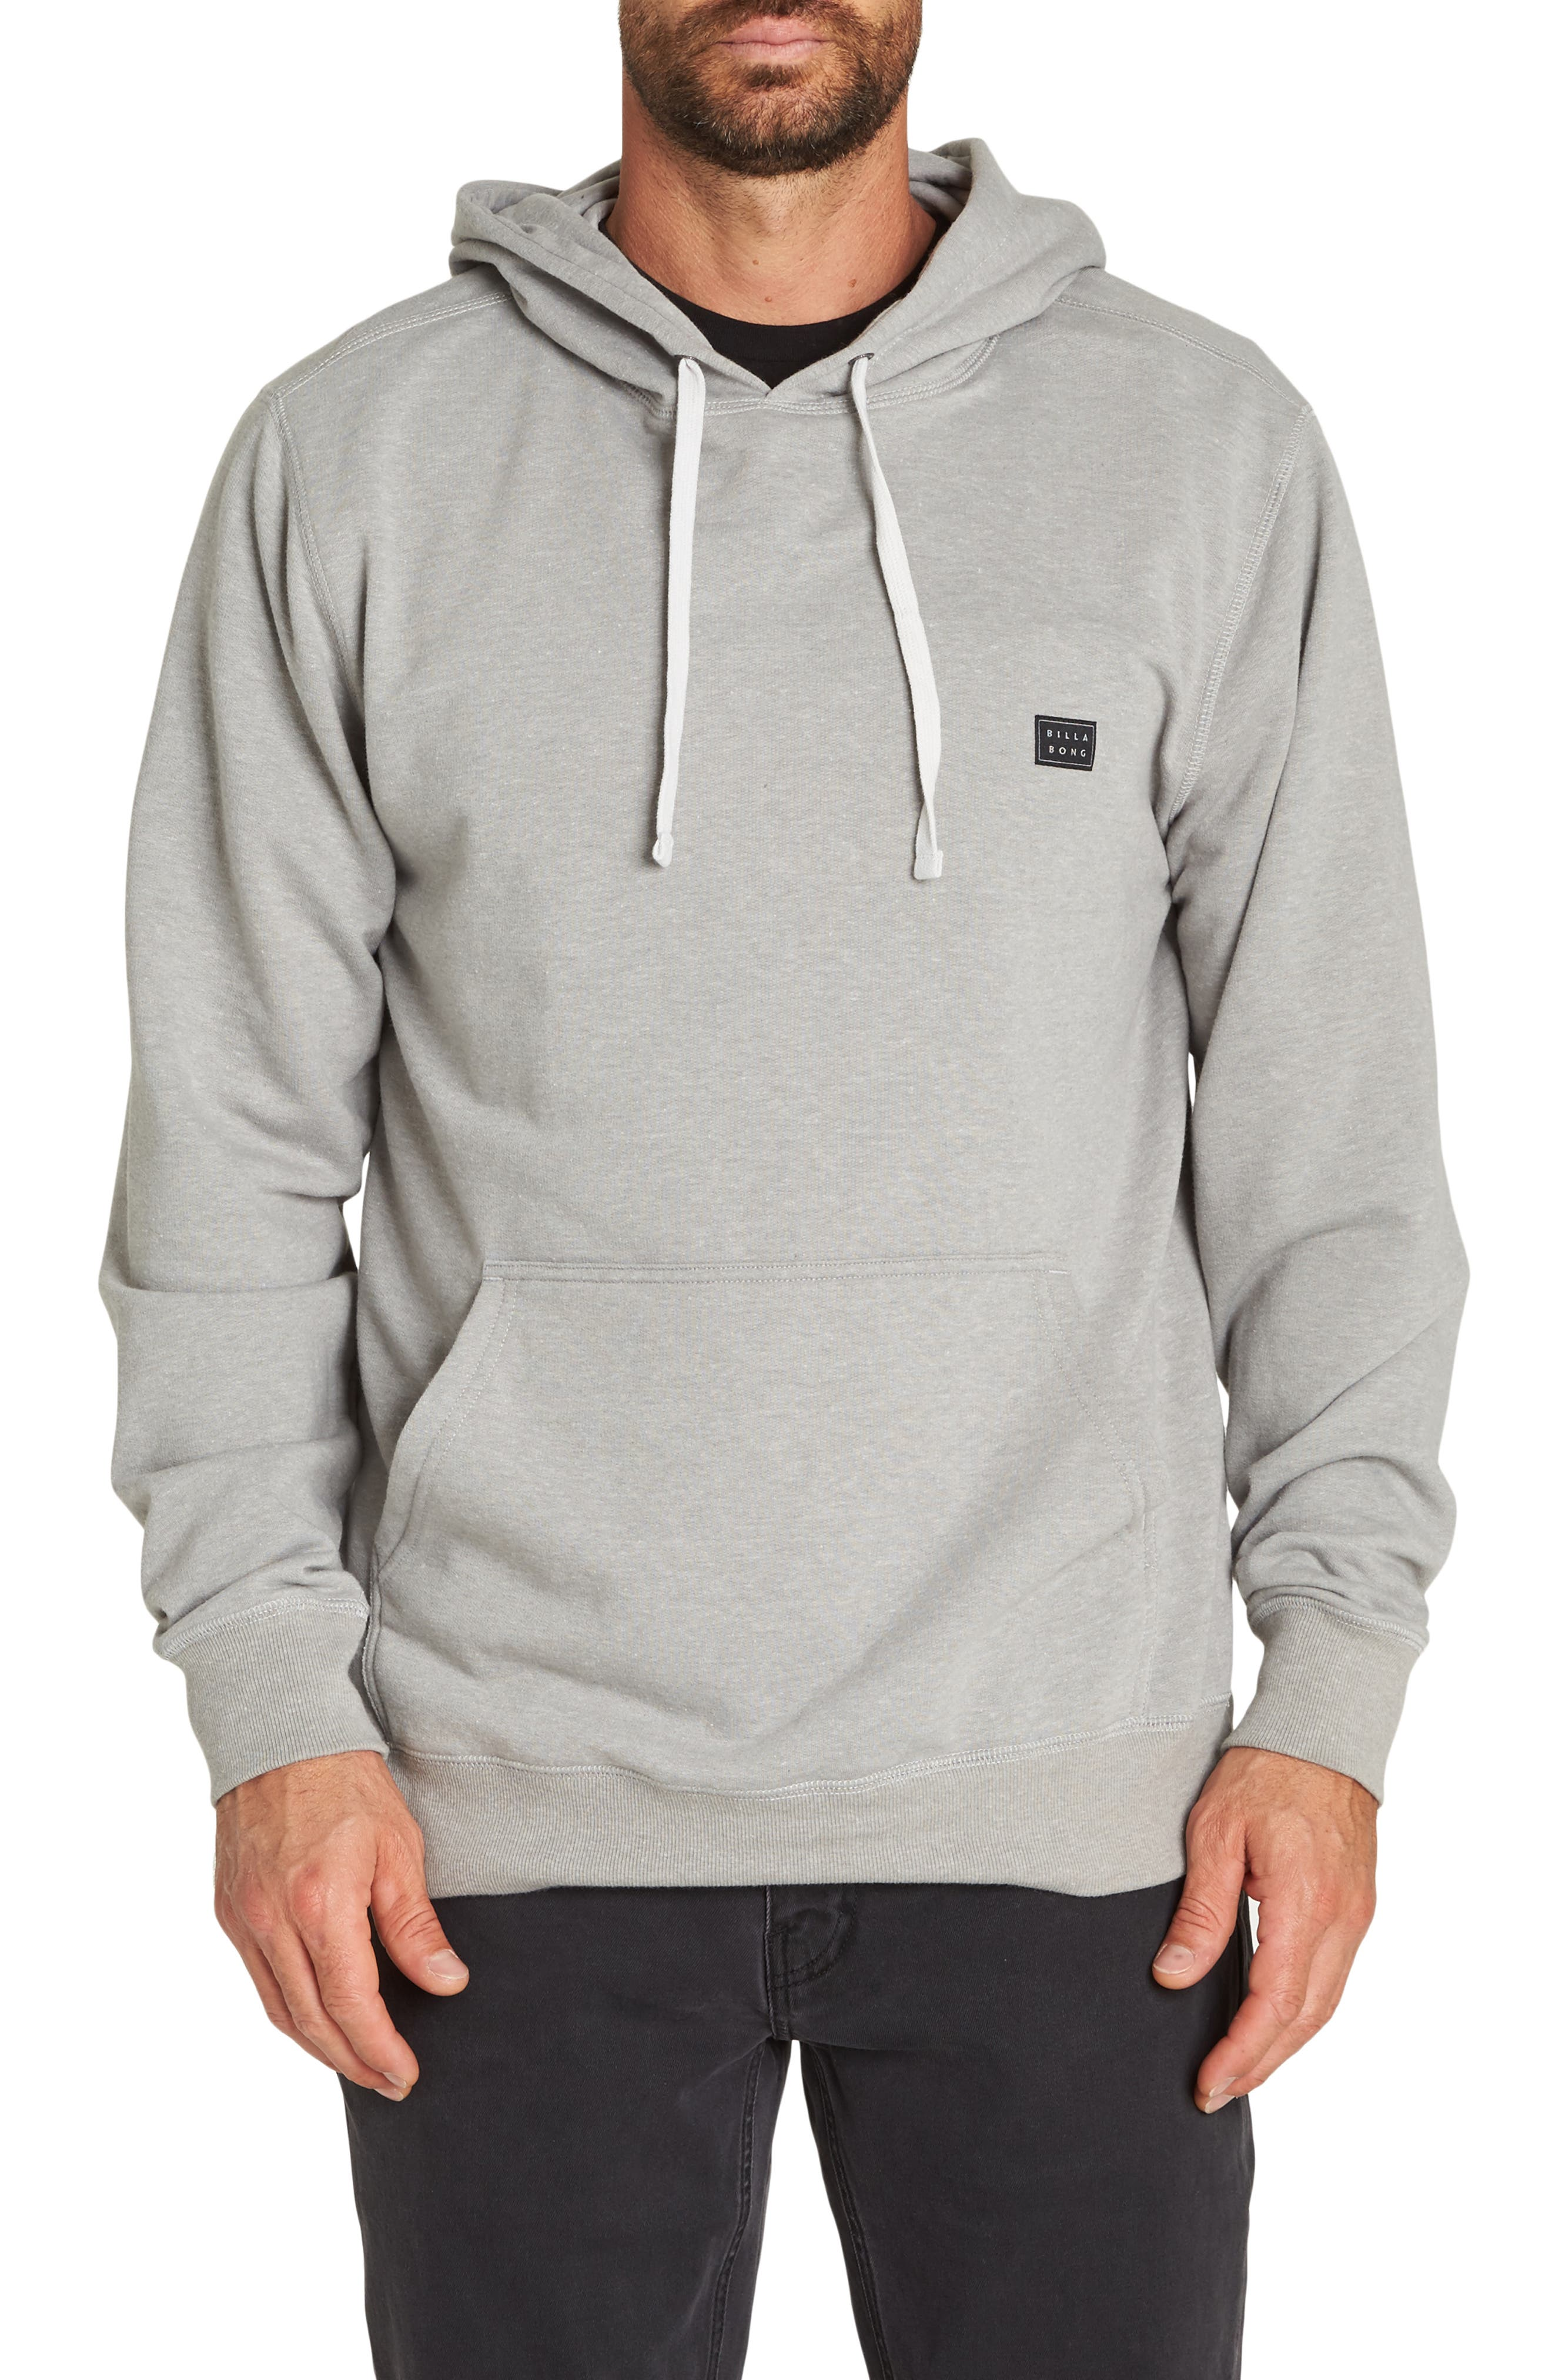 All Day Hoodie,                             Main thumbnail 1, color,                             GREY